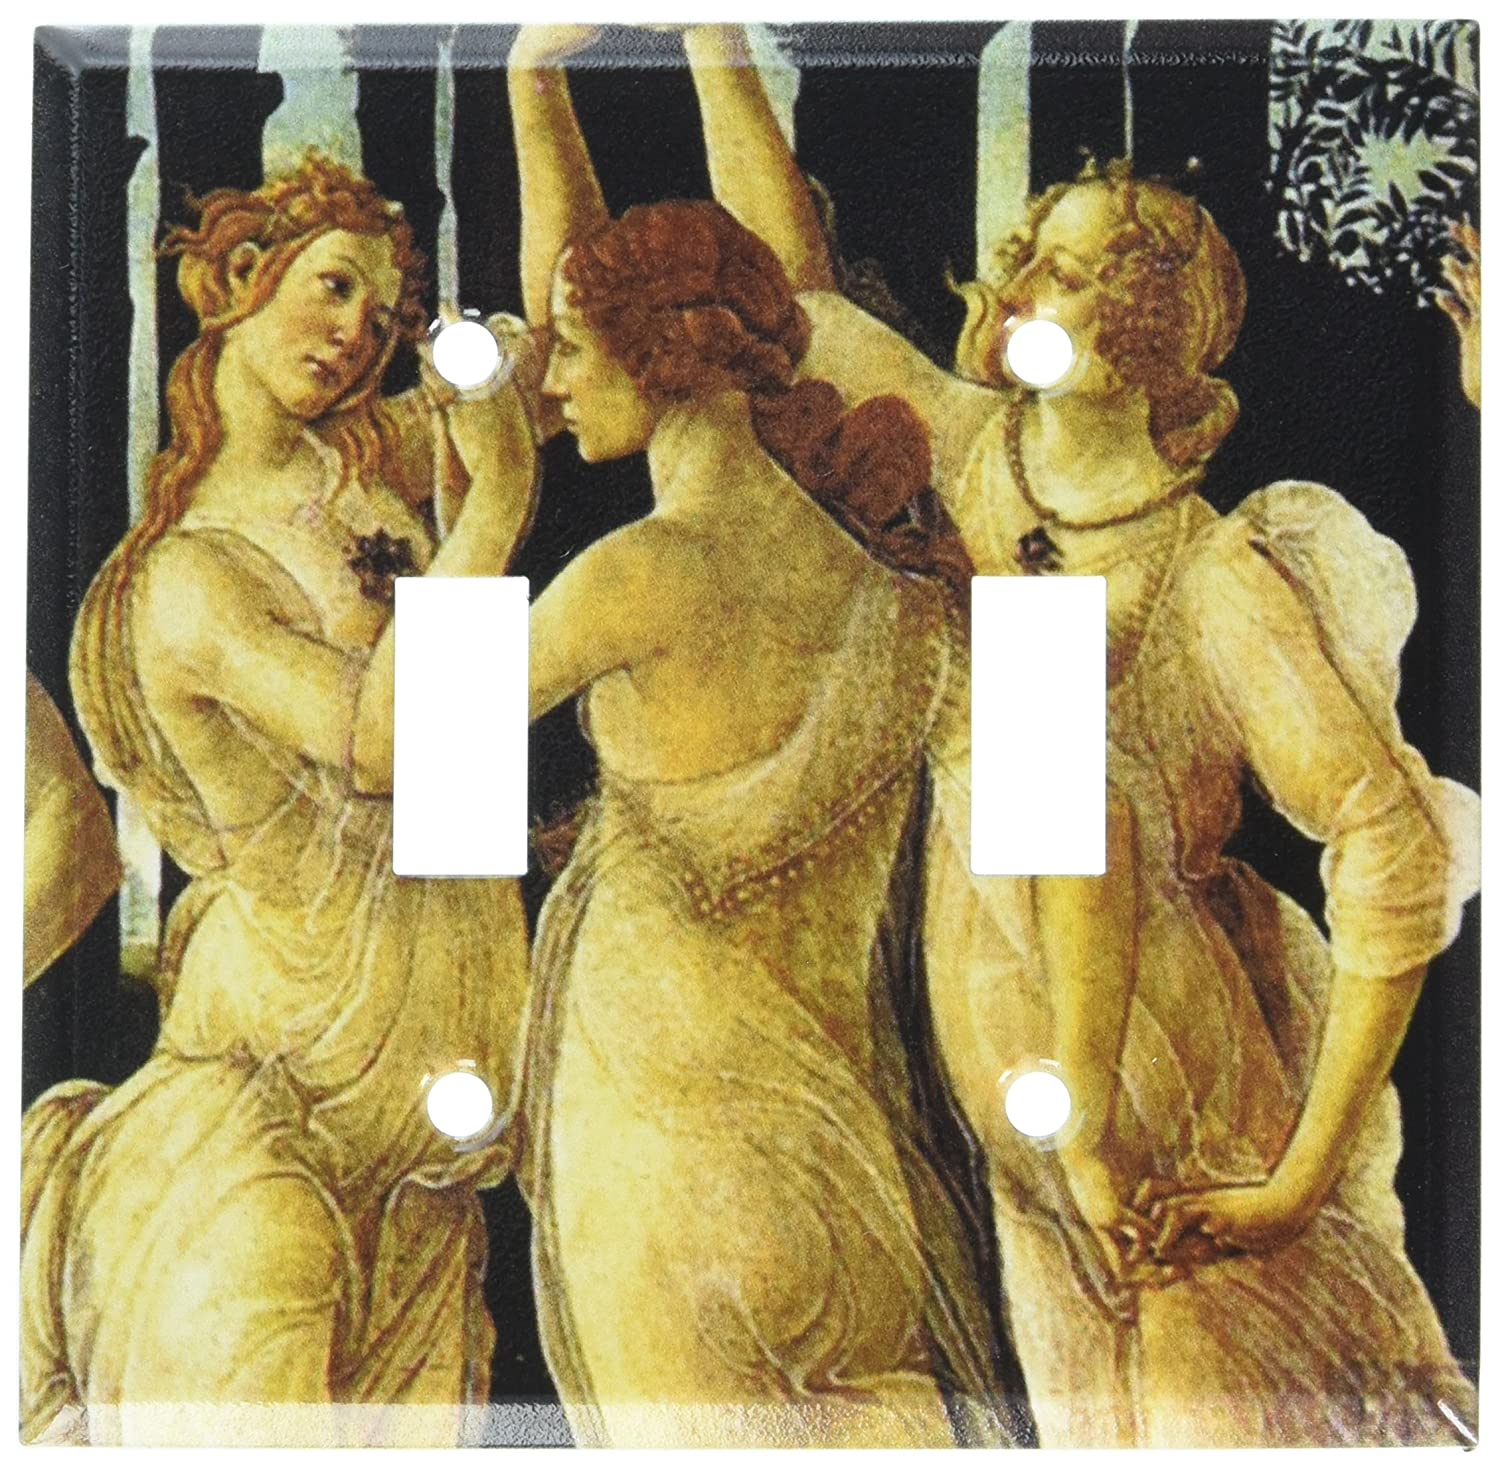 Double Toggle Spring Switch Plate Art Plates Botticelli